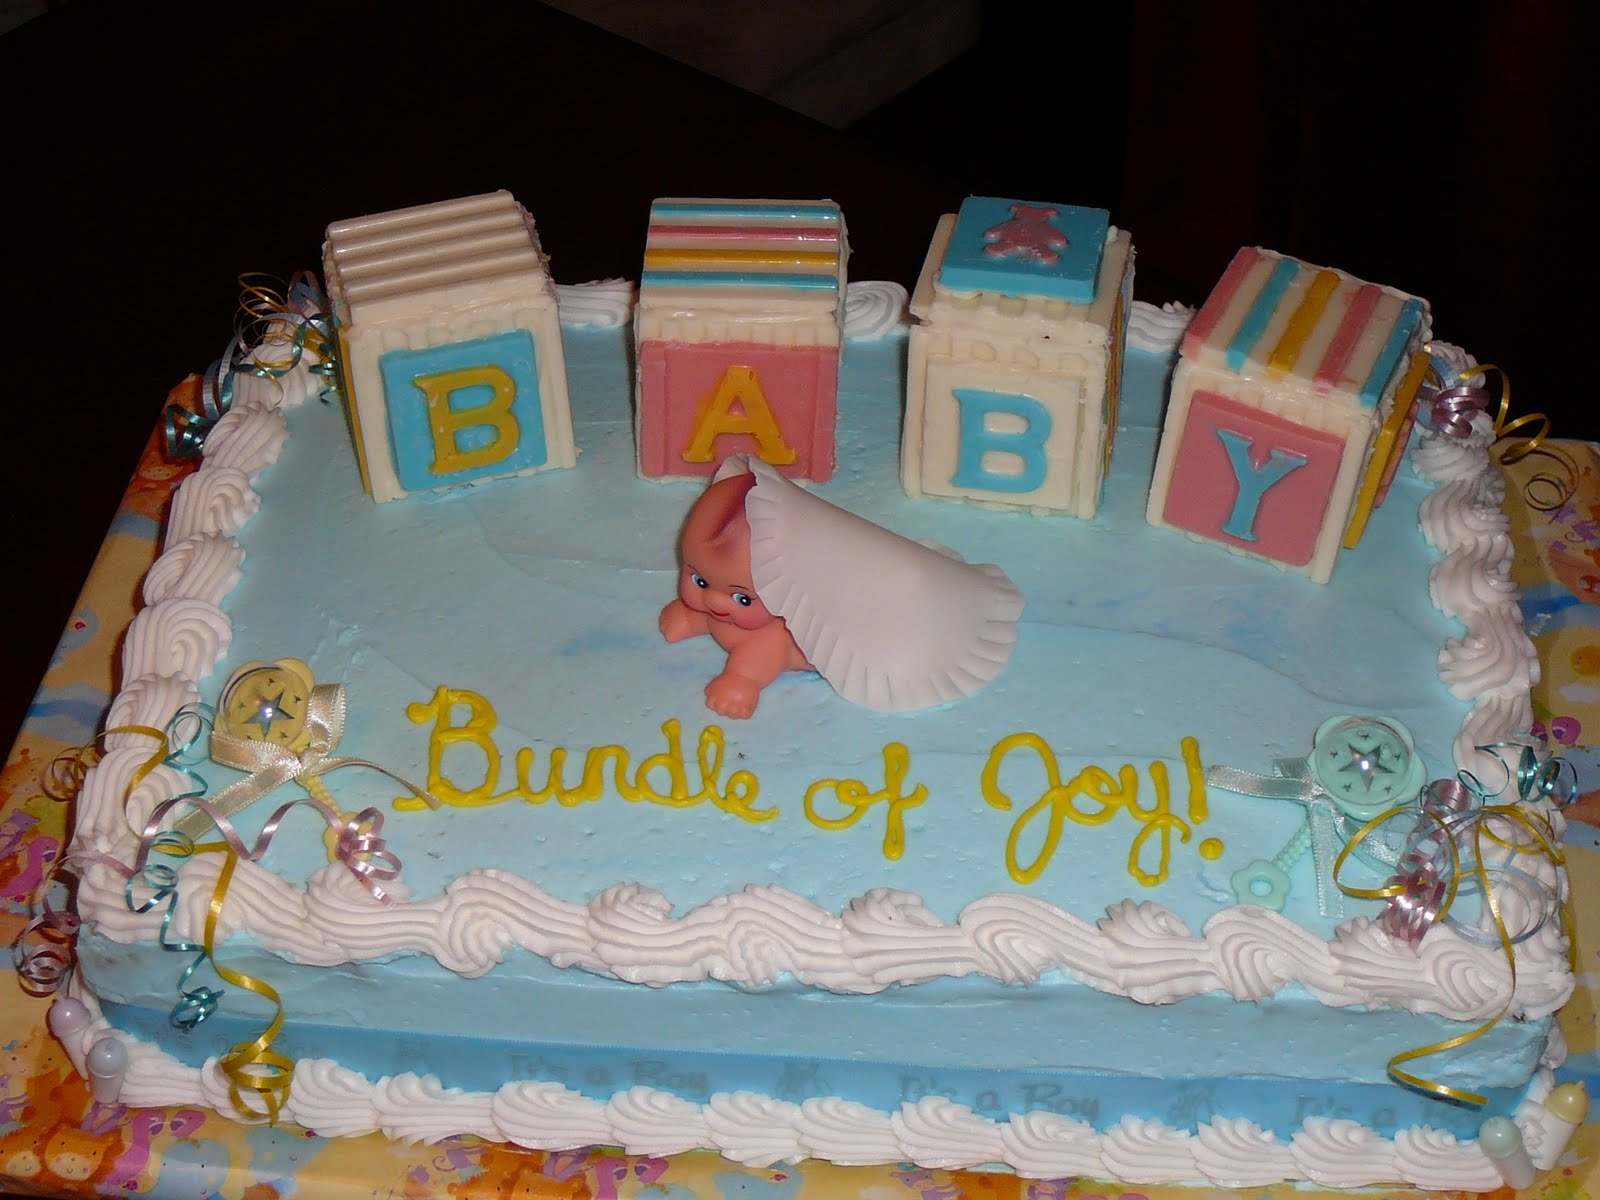 Sarah s Icing on the Cake Baby Shower Cake with Candy Blocks